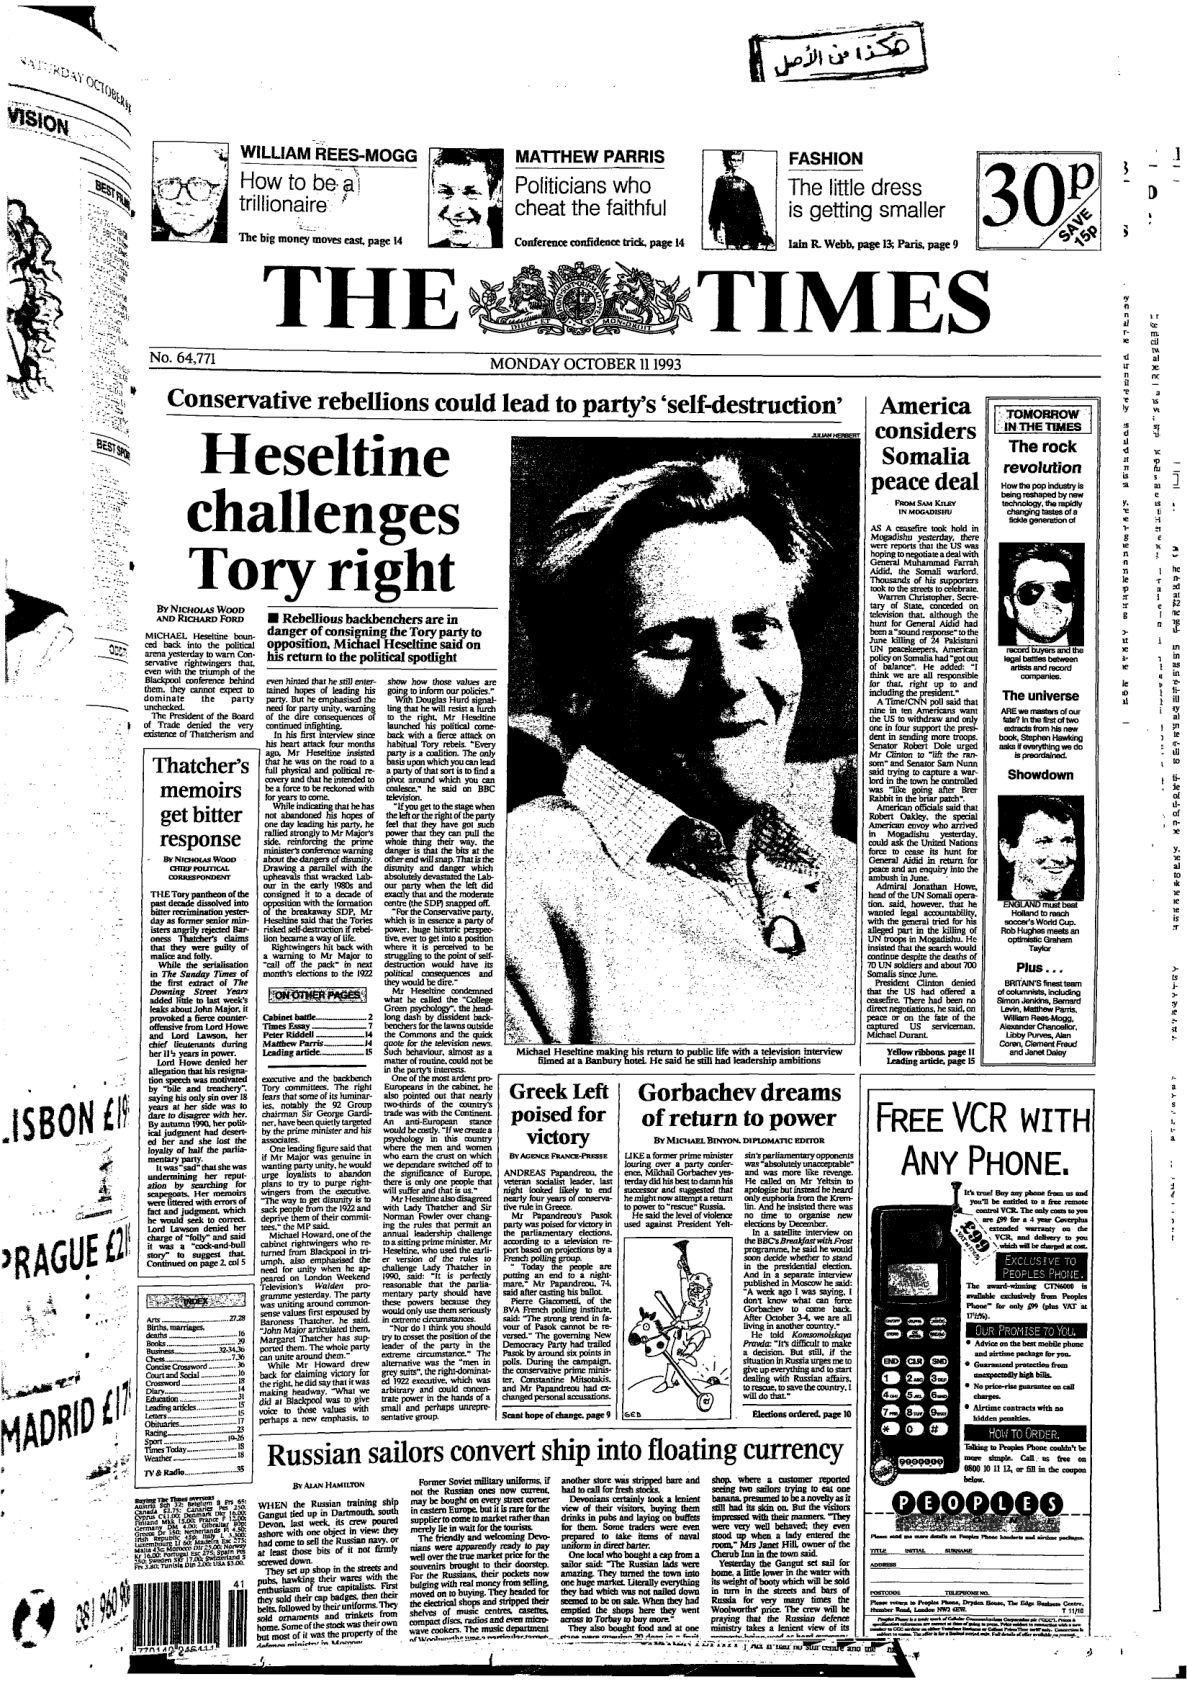 The Times Issue No. 64771. 1993-10-11, UK